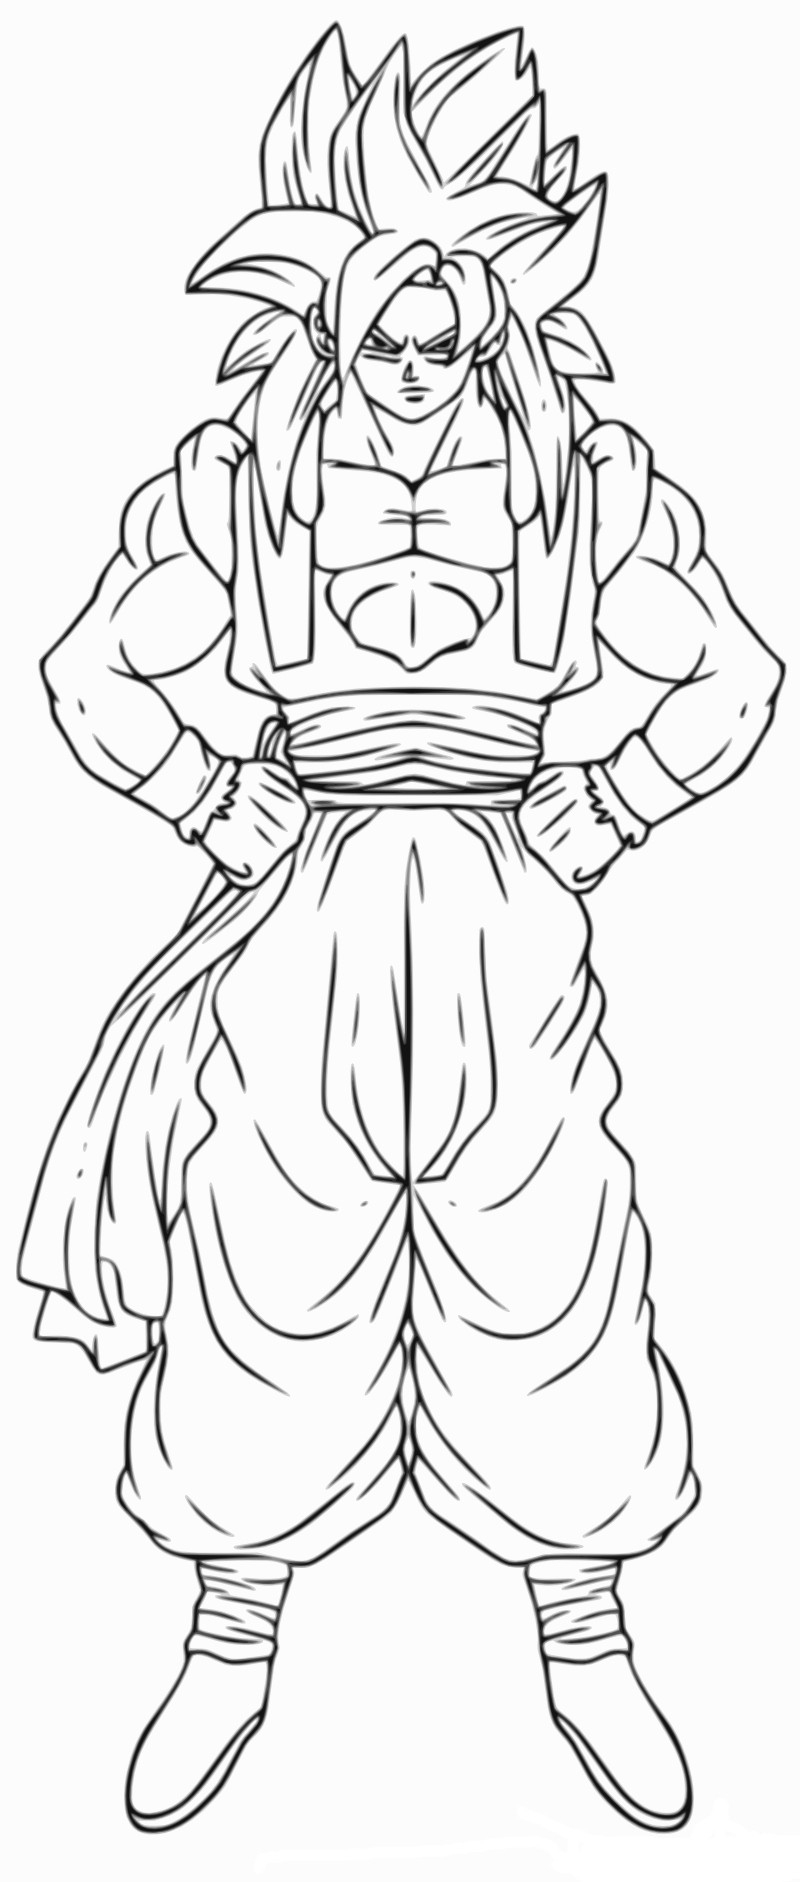 Coloriage Gogeta Dragon Ball Z Imprimer Et Colorier – 3 Design à Coloriage Dragon Ball Z Sangoku